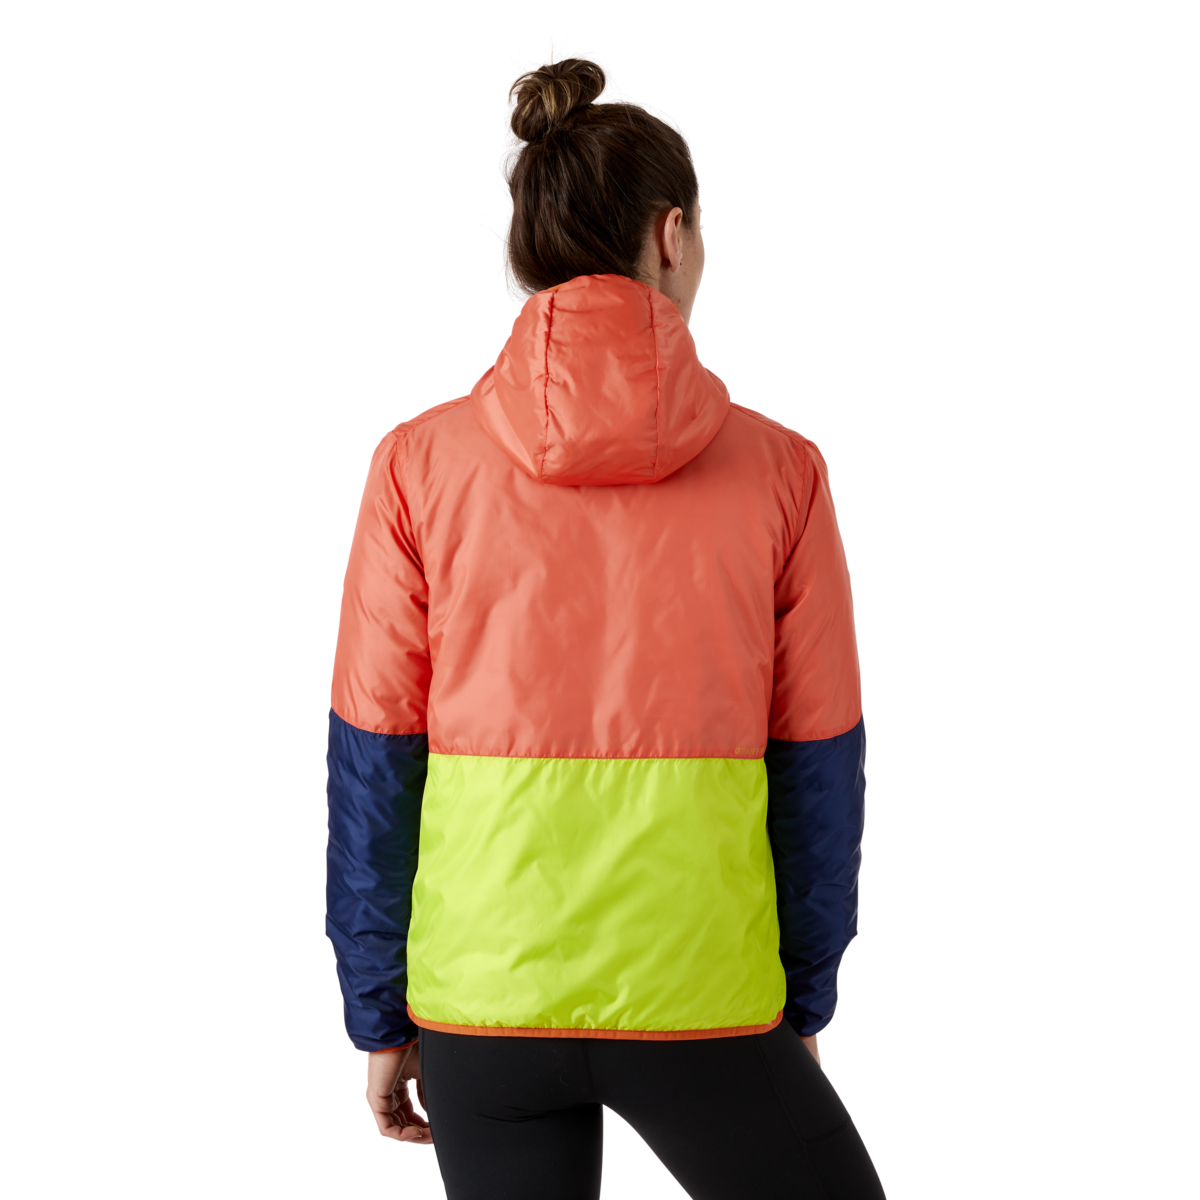 Cotopaxi Teca Calido Hooded Jacket in Super Bloom